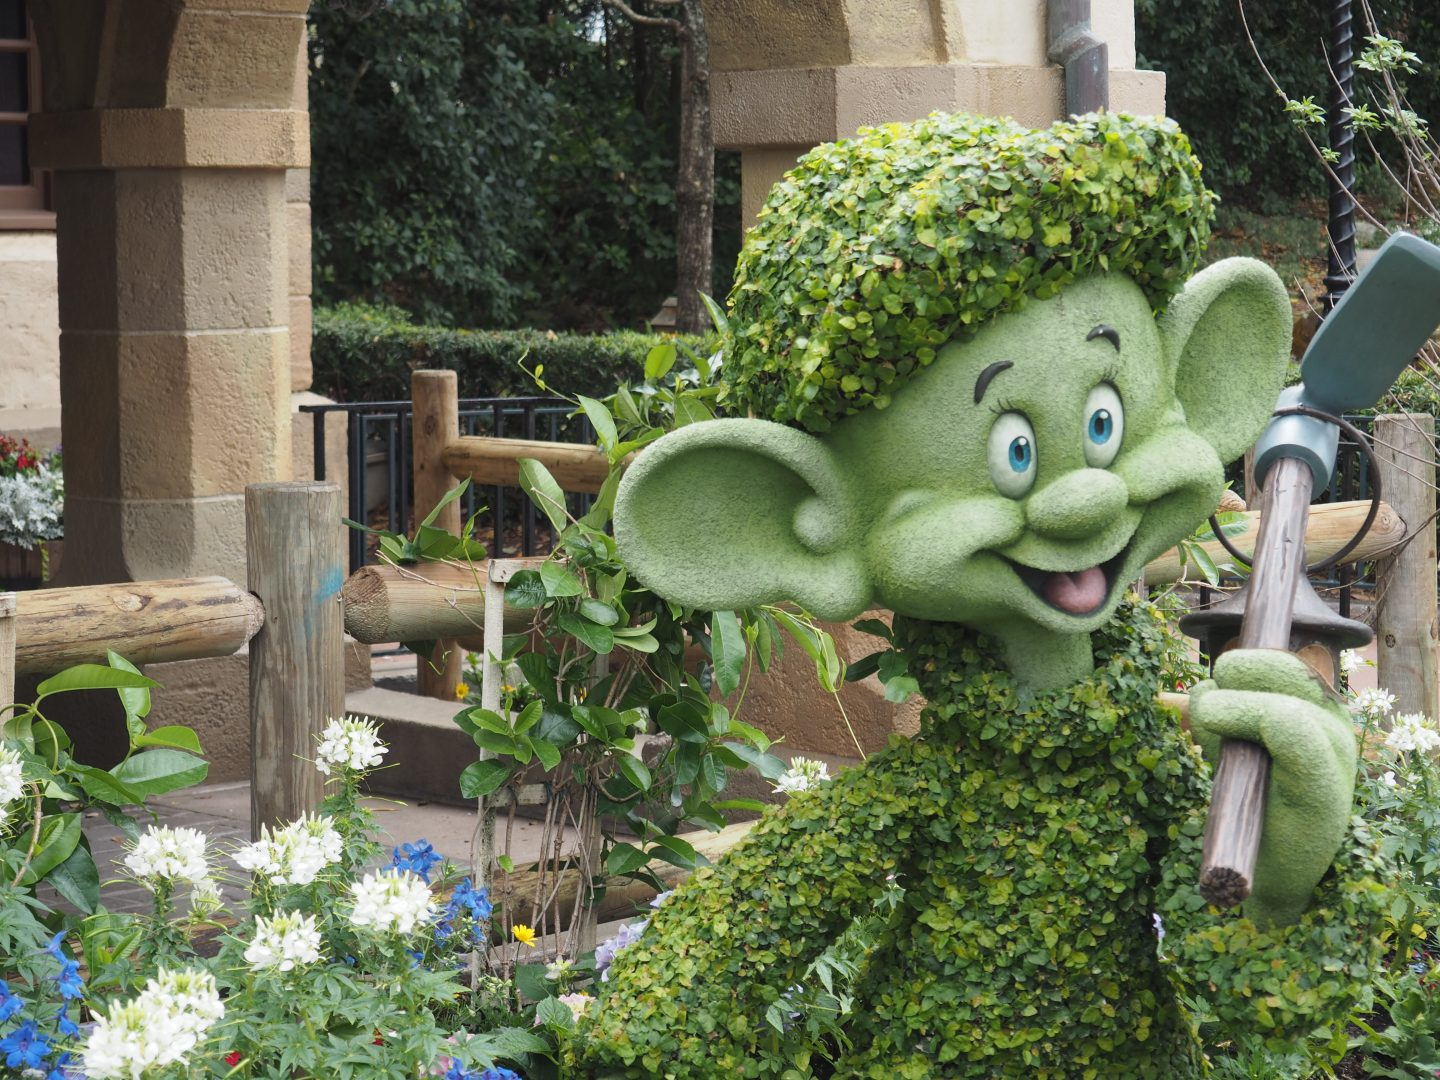 walt disney world flower and garden festival 2020